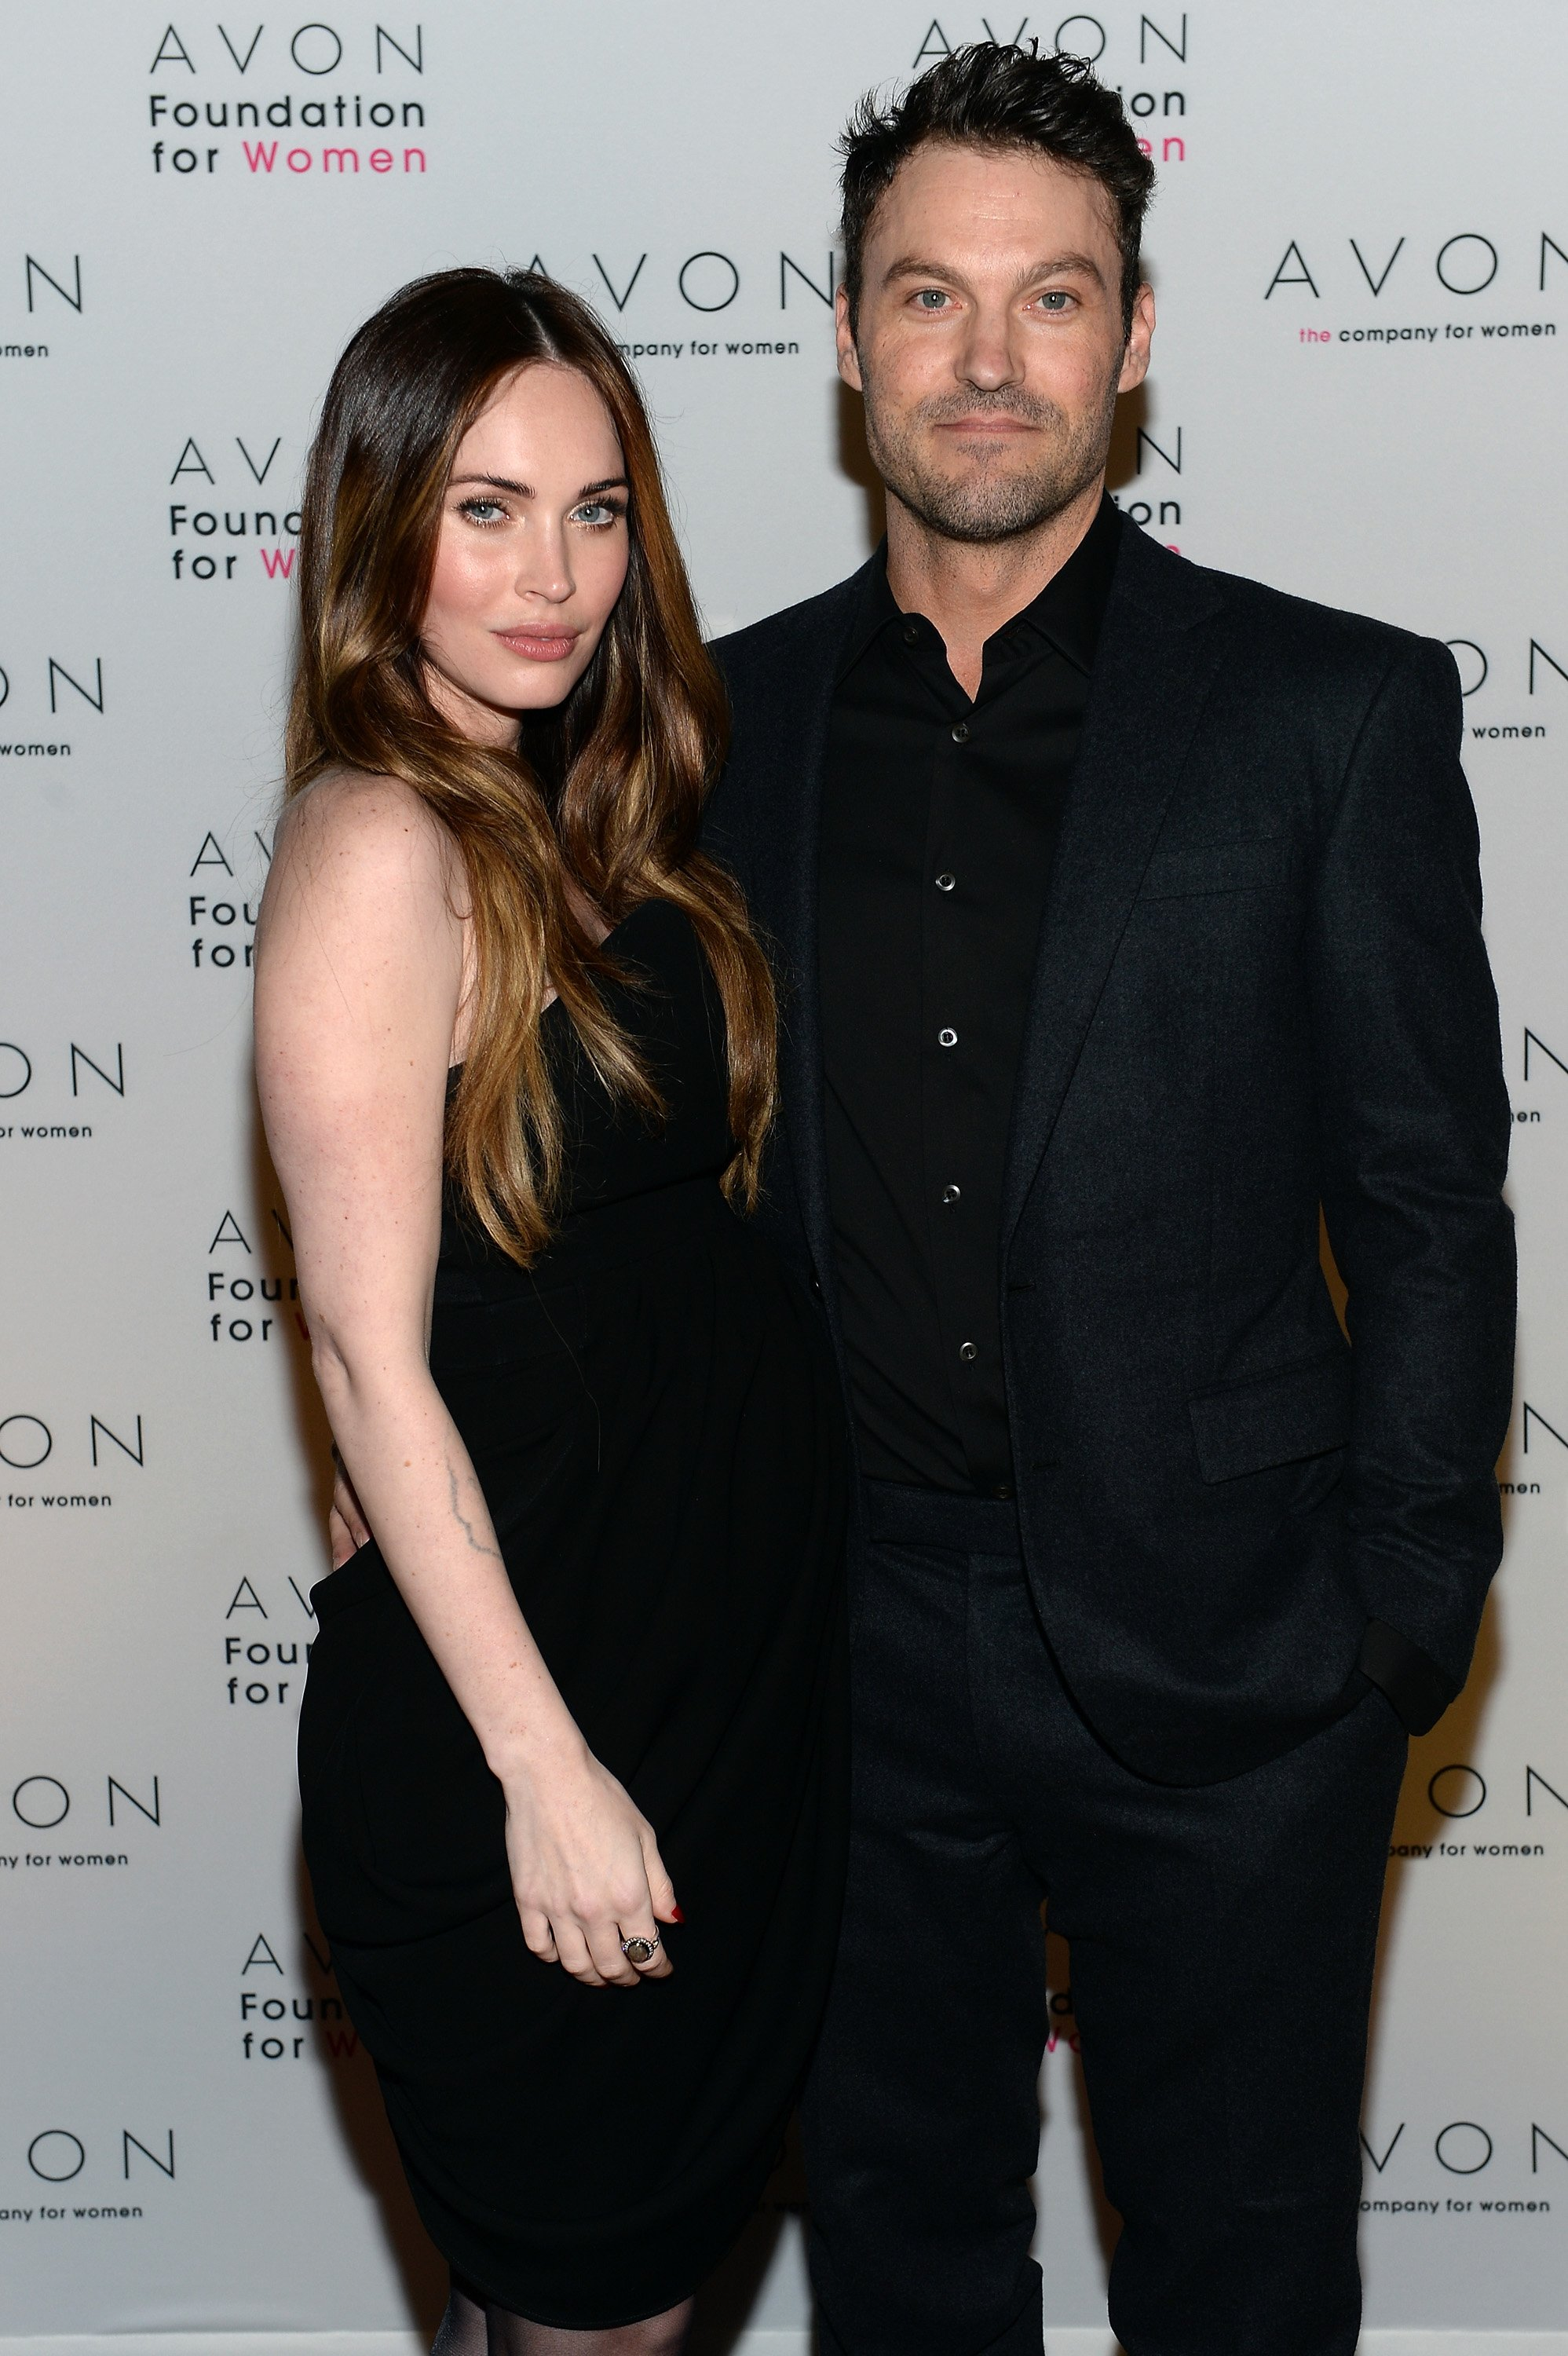 Megan Fox and Brian Austin Green at The Morgan Library & Museum in New York City on November 25, 2013. | Photo: Getty Images.